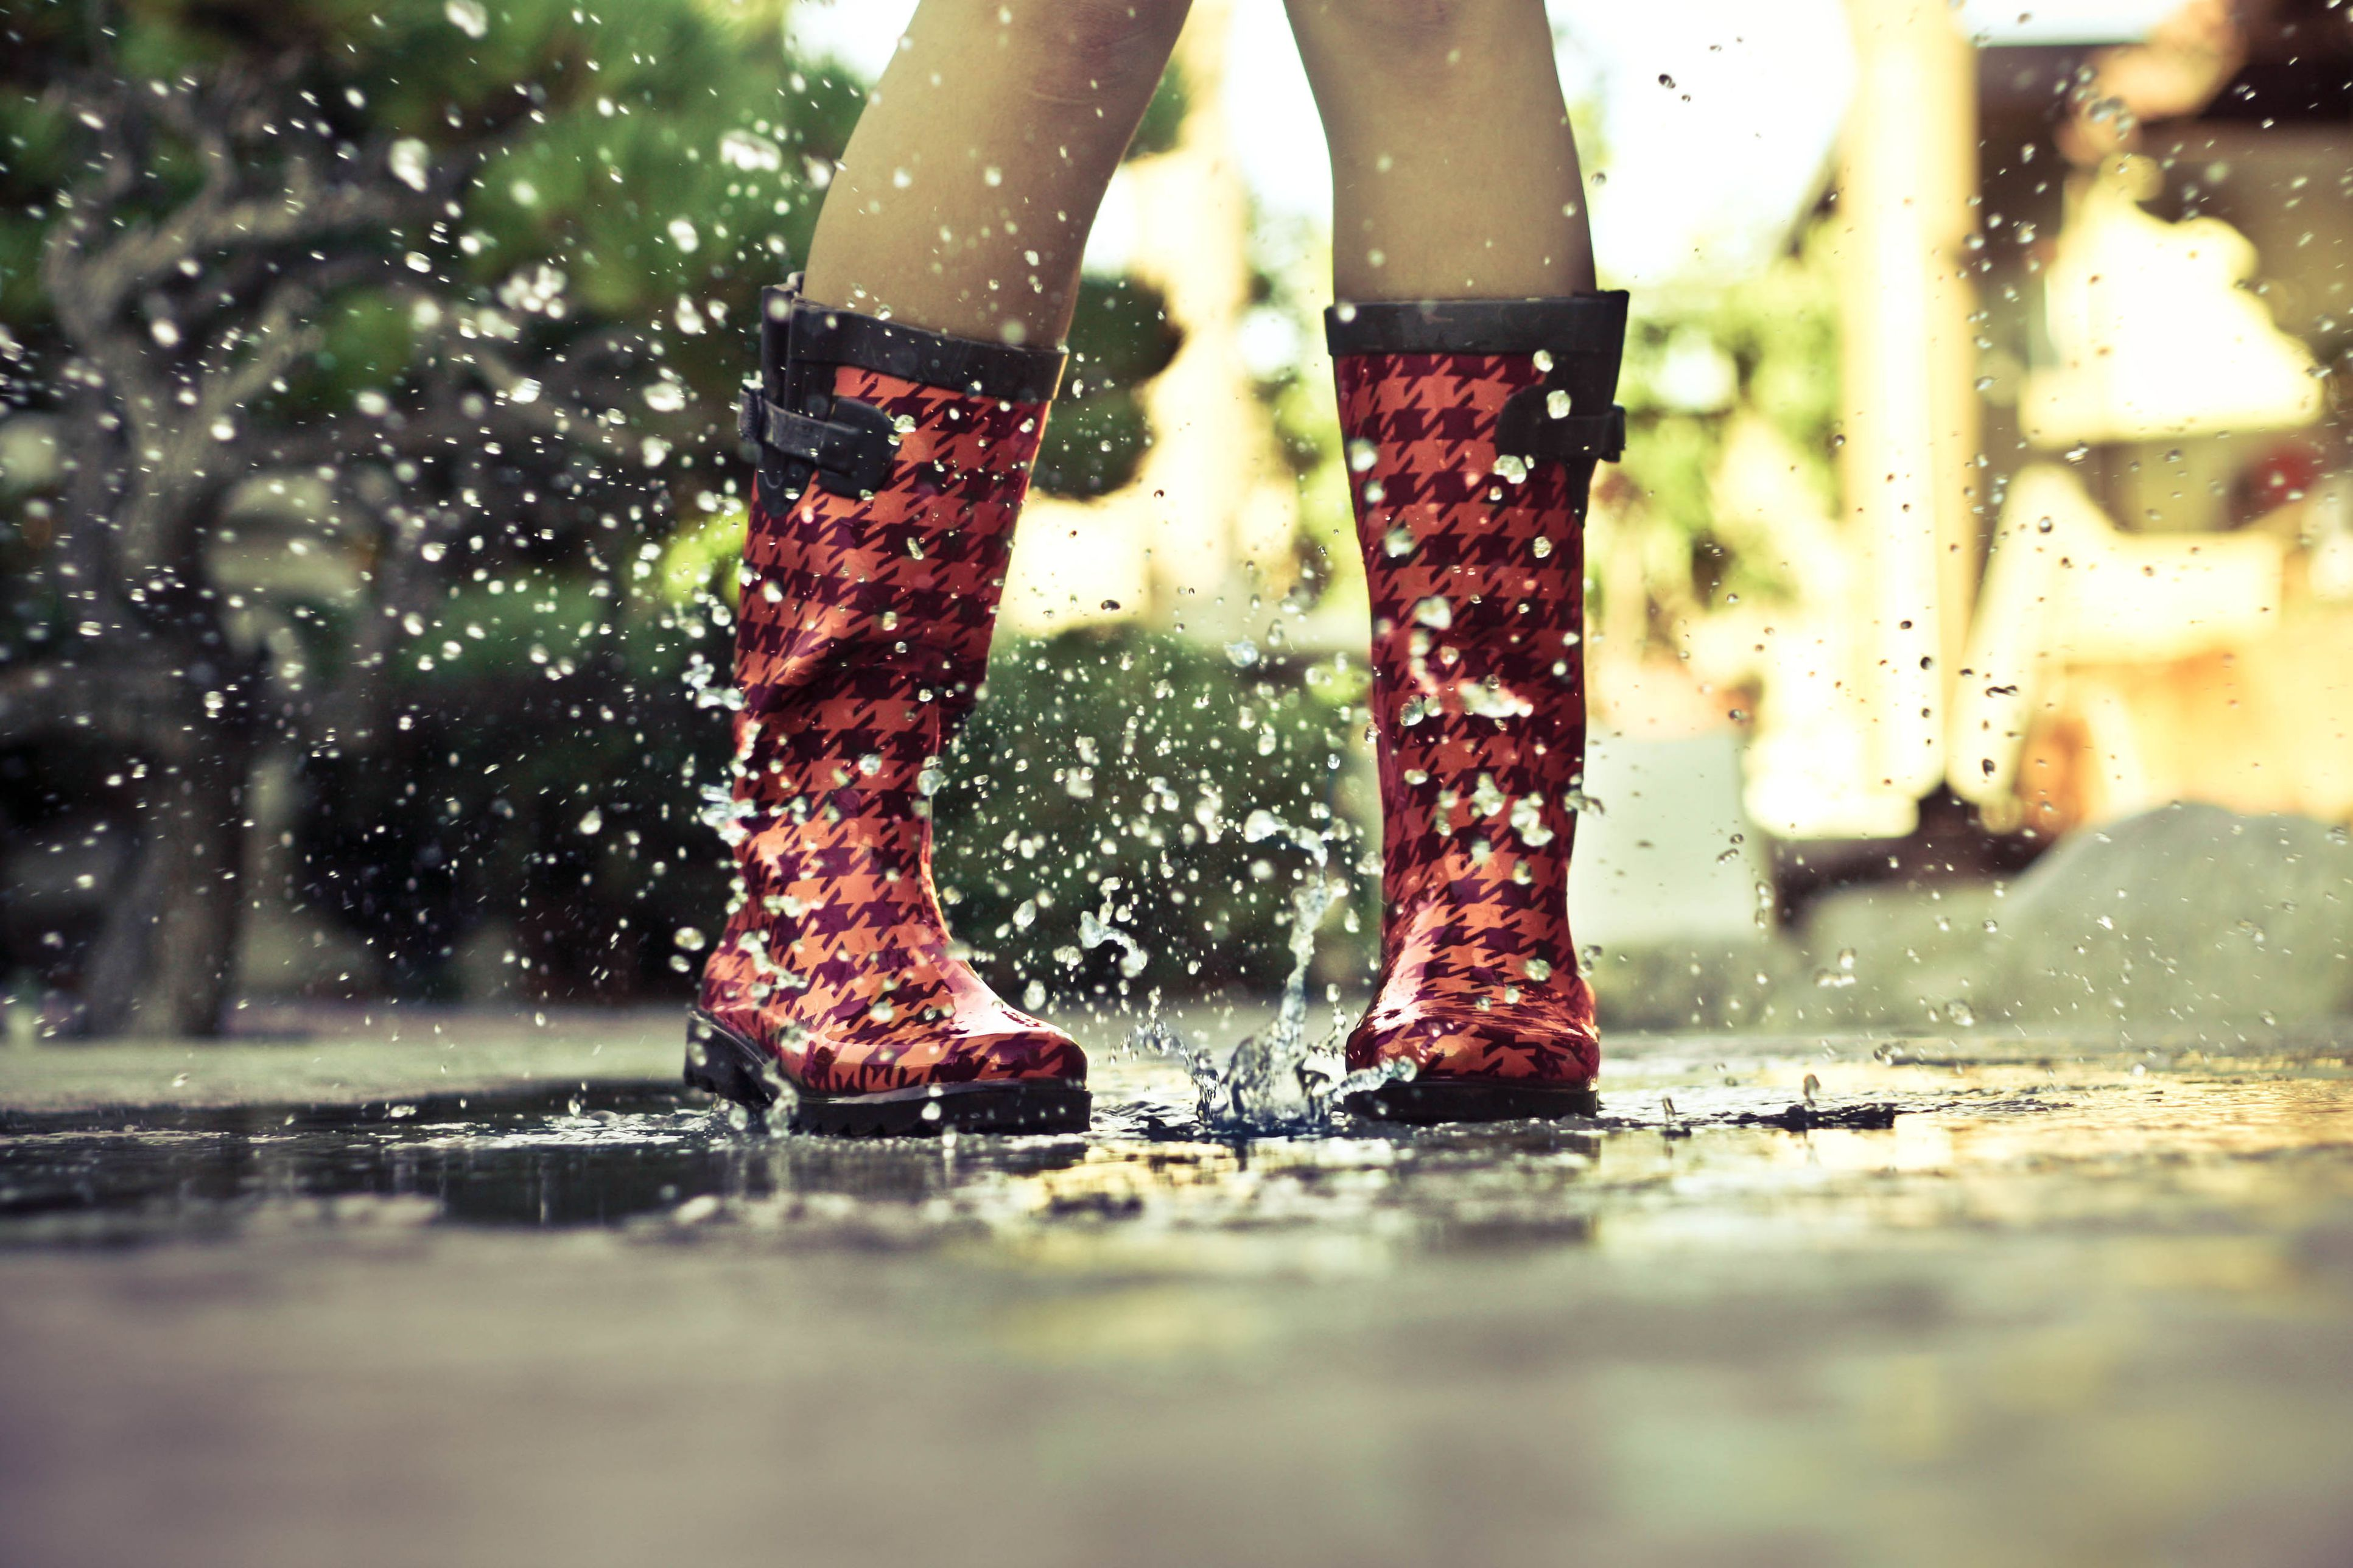 How To Clean Wellies Or Rubber Boots Inside And Out